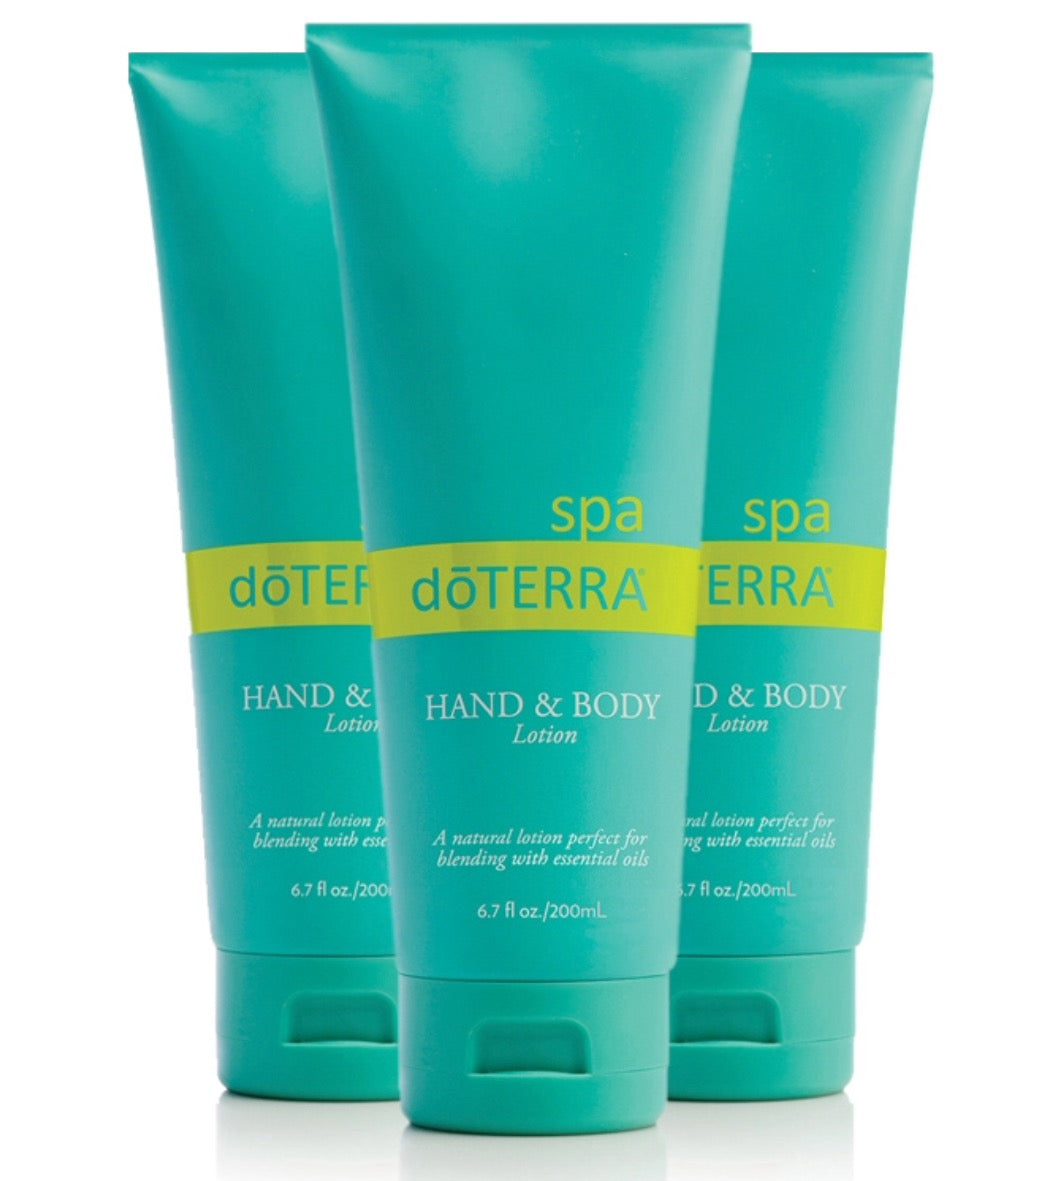 Doterra Spa Hand & Body Lotion | 3-Pack | Fragrance Free - Integrity Lane